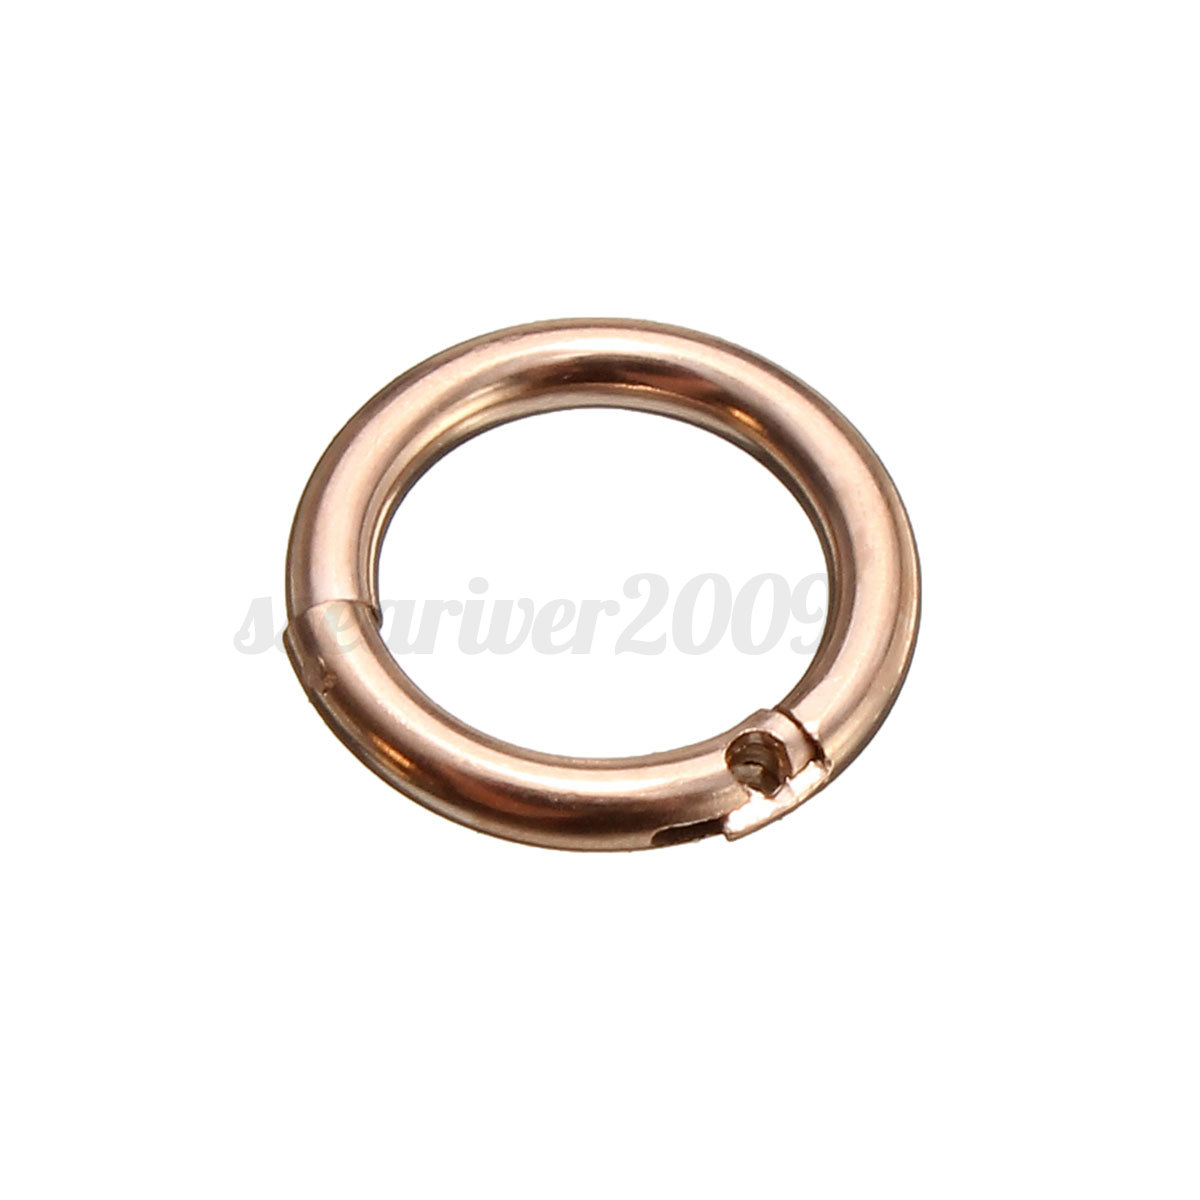 Cool 16g Stainless Steel Hinged Septum Segment Hoop Ring